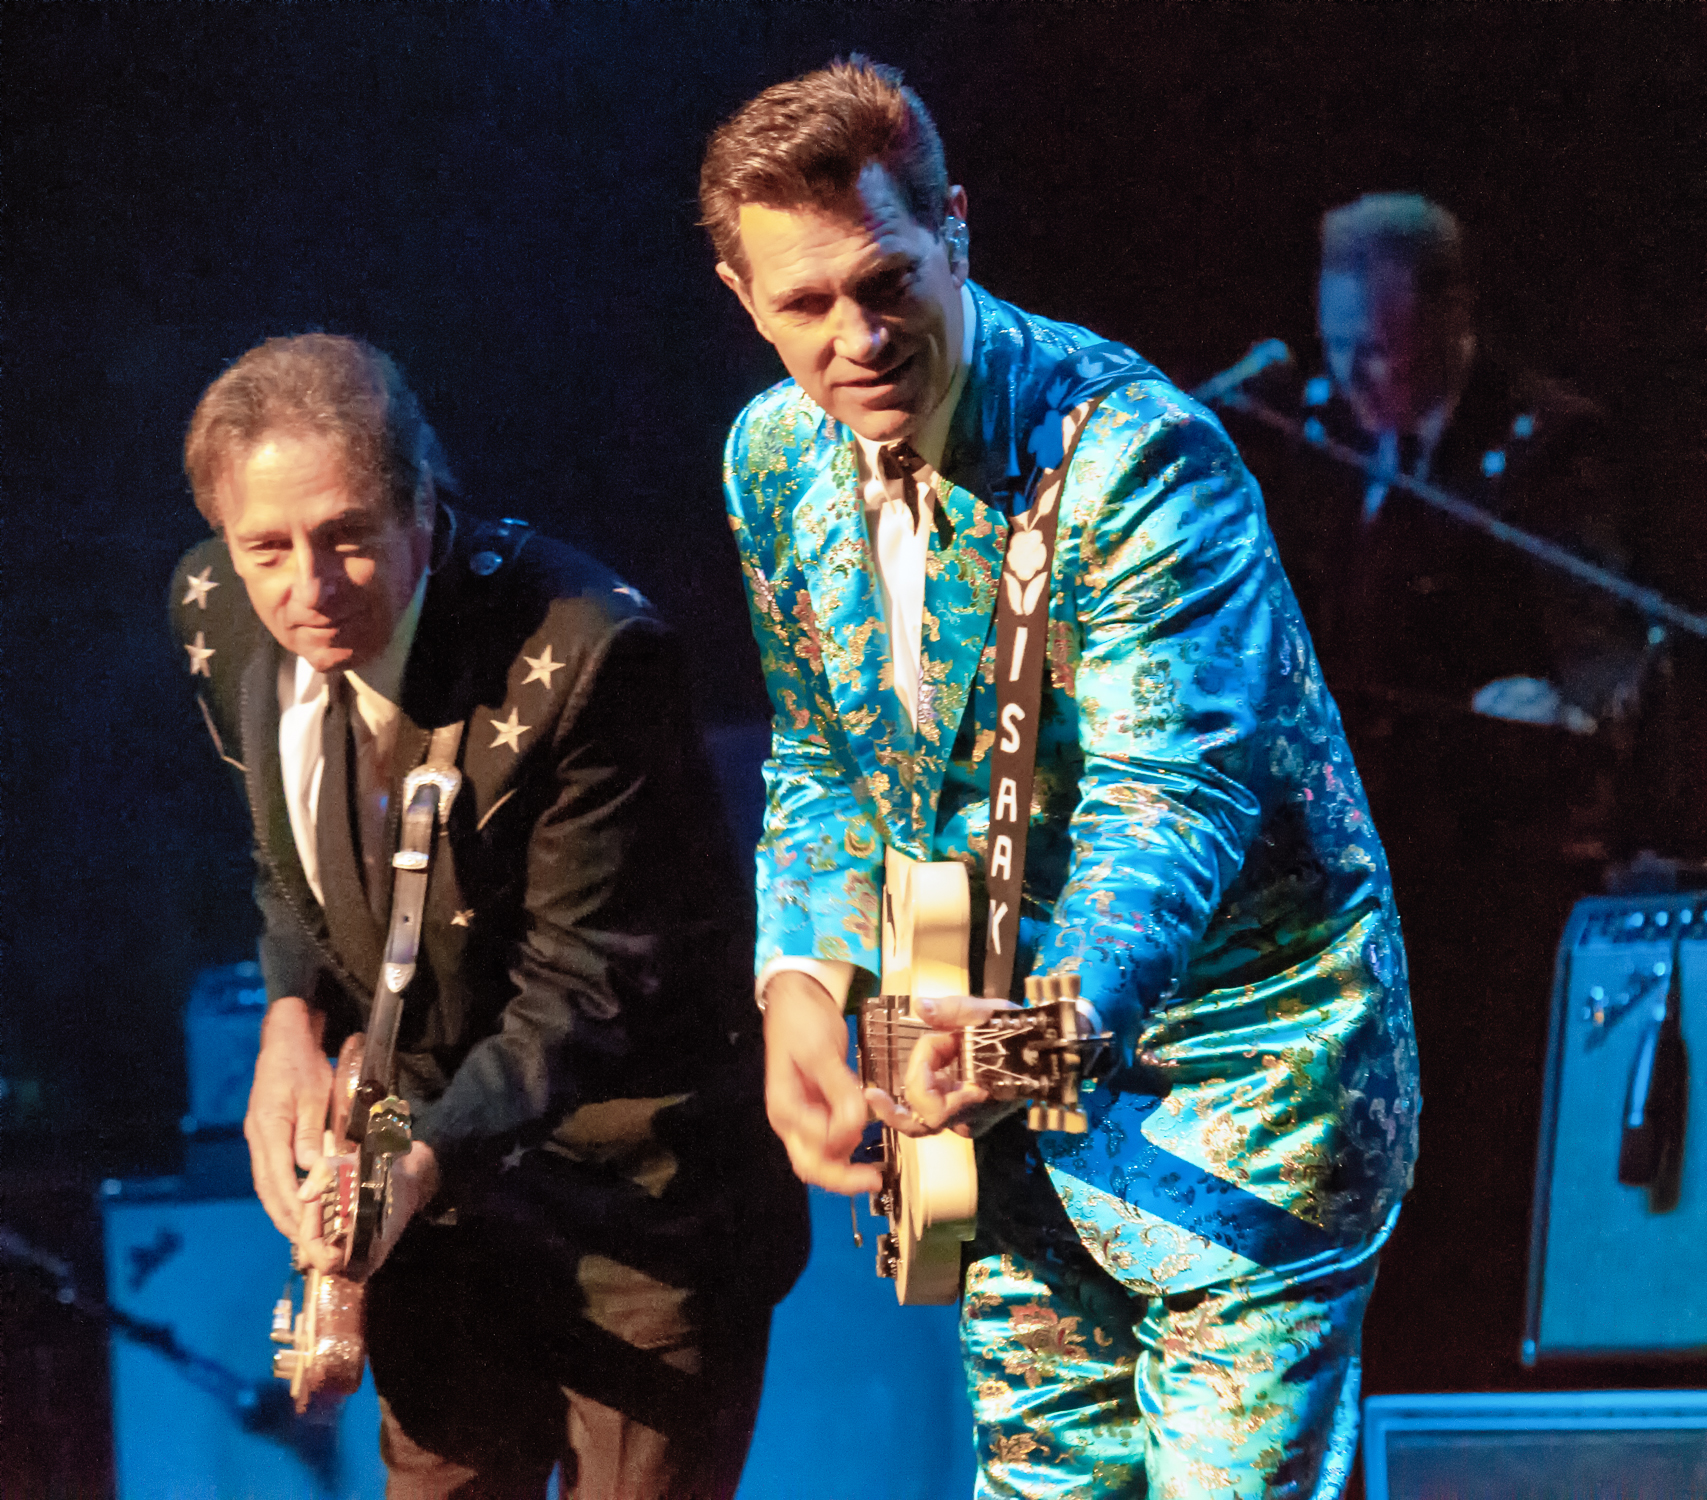 Rowland salley and chris isaak at the montreal international jazz festival 2013